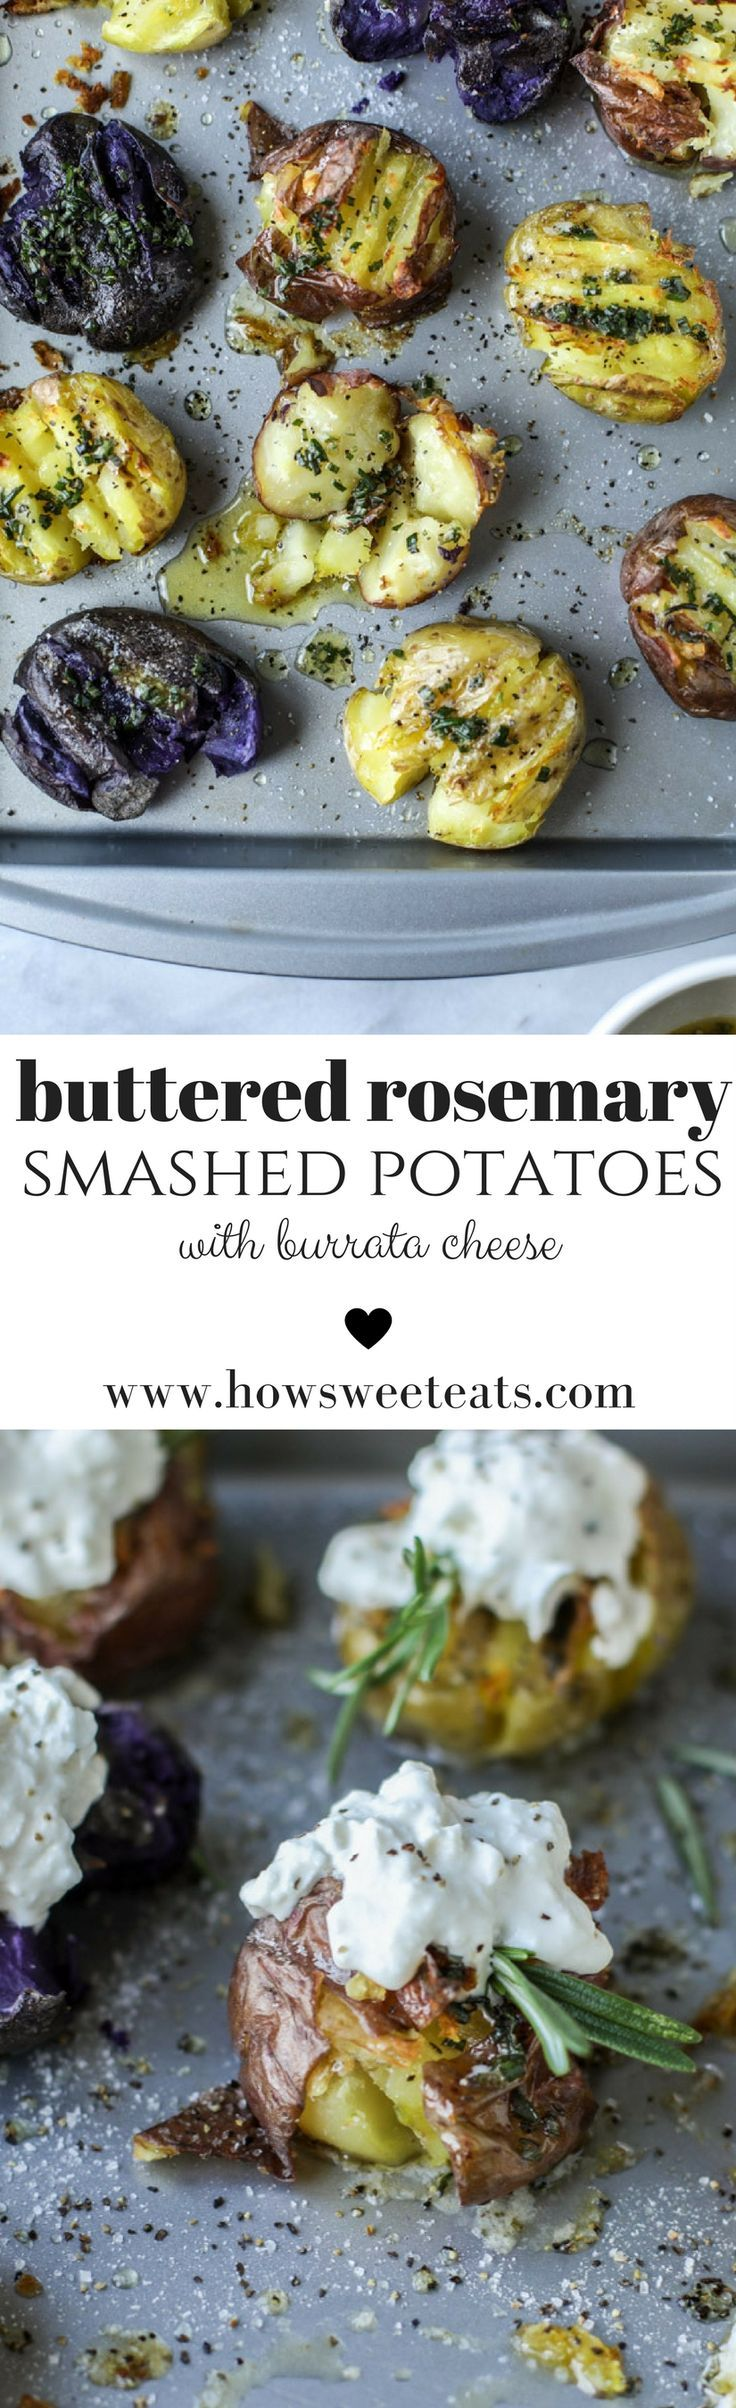 Buttered Rosemary Smashed Potatoes with Burrata Cheese! I howsweeteats.com @howsweeteats